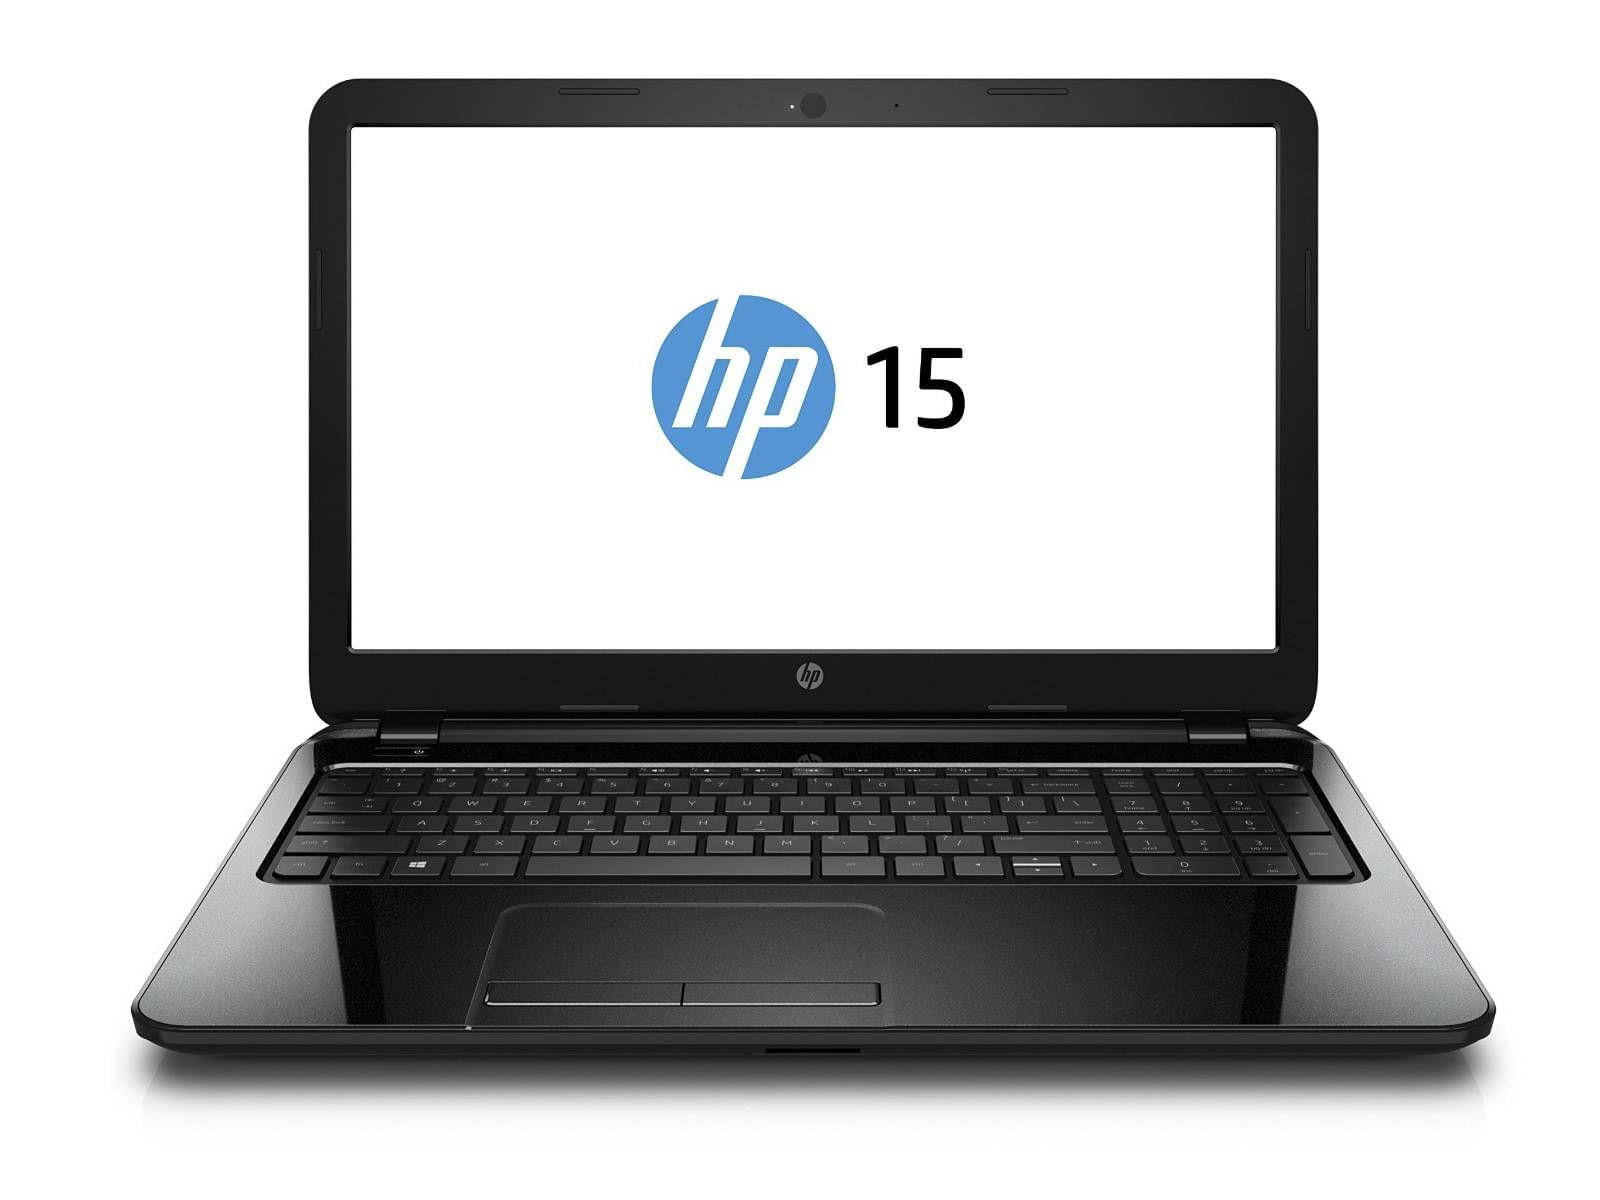 HP 15-ay128TU, Core i3-7100U(2.40 GHz,3MB), 4GB RAM DDR4, 500GB HDD, DVDSM, Intel HD Graphics, 15.6